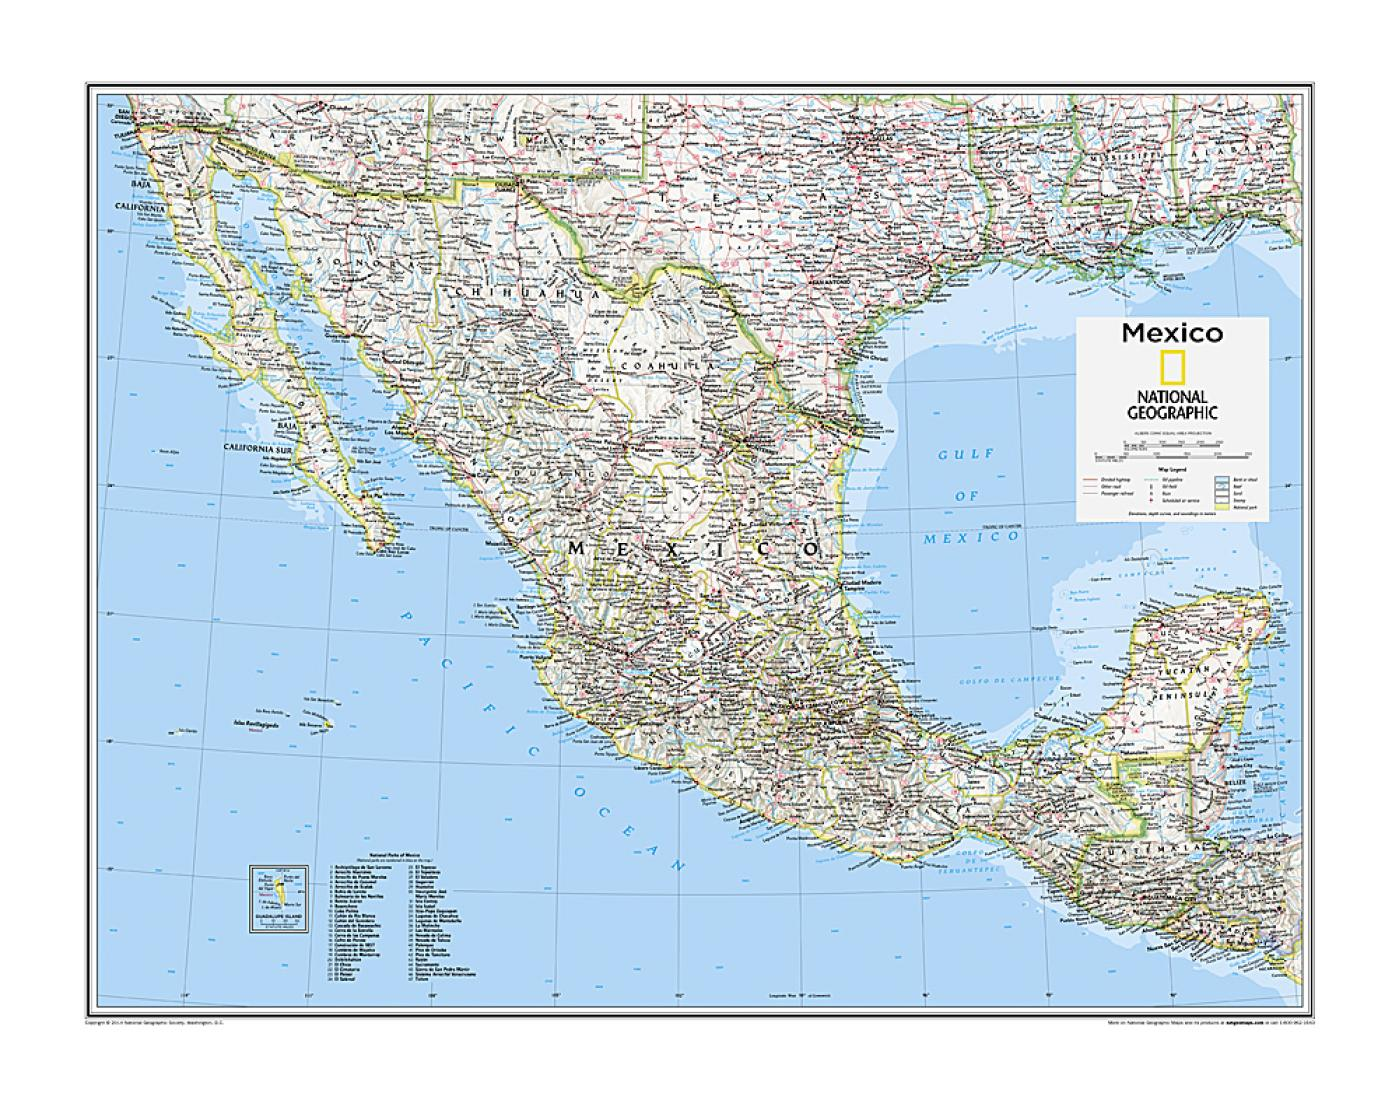 Picture of: Mexico Map From National Geographic Atlas Of The World 10th Edition By National Geographic Maps